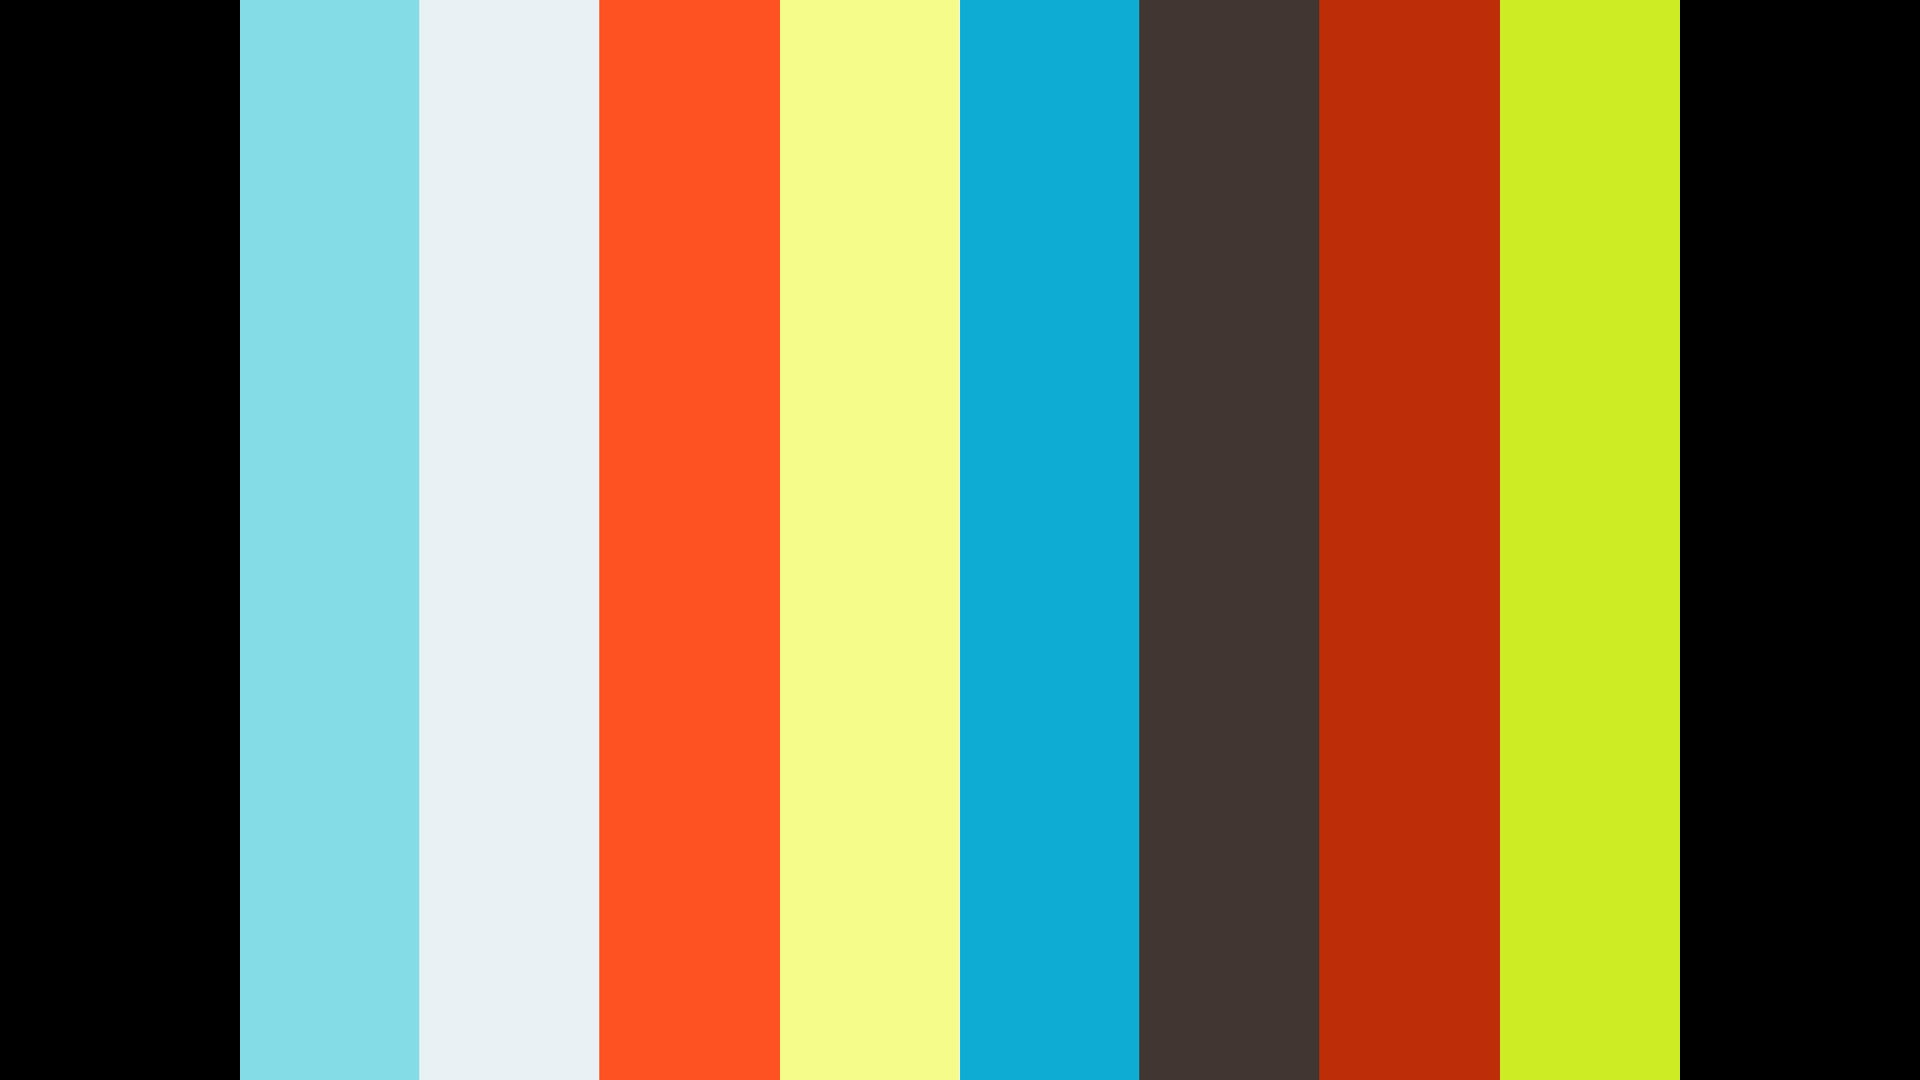 Premium showcase video of 23382 AUDUBON LAKES BLVD